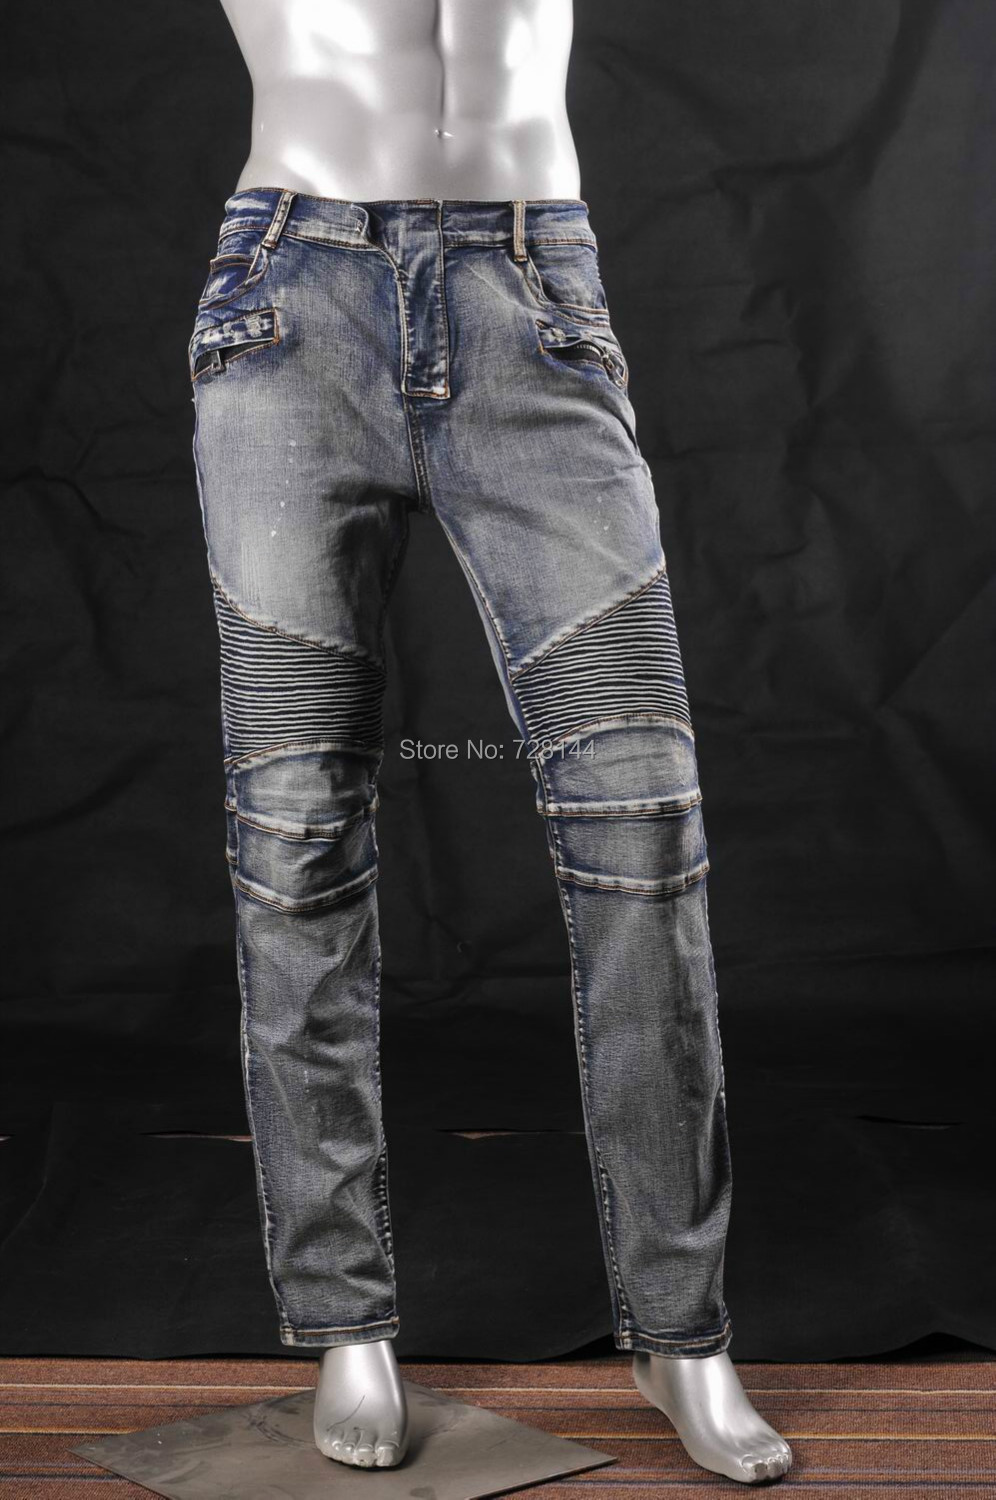 jean brand jeans Picture - More Detailed Picture about free